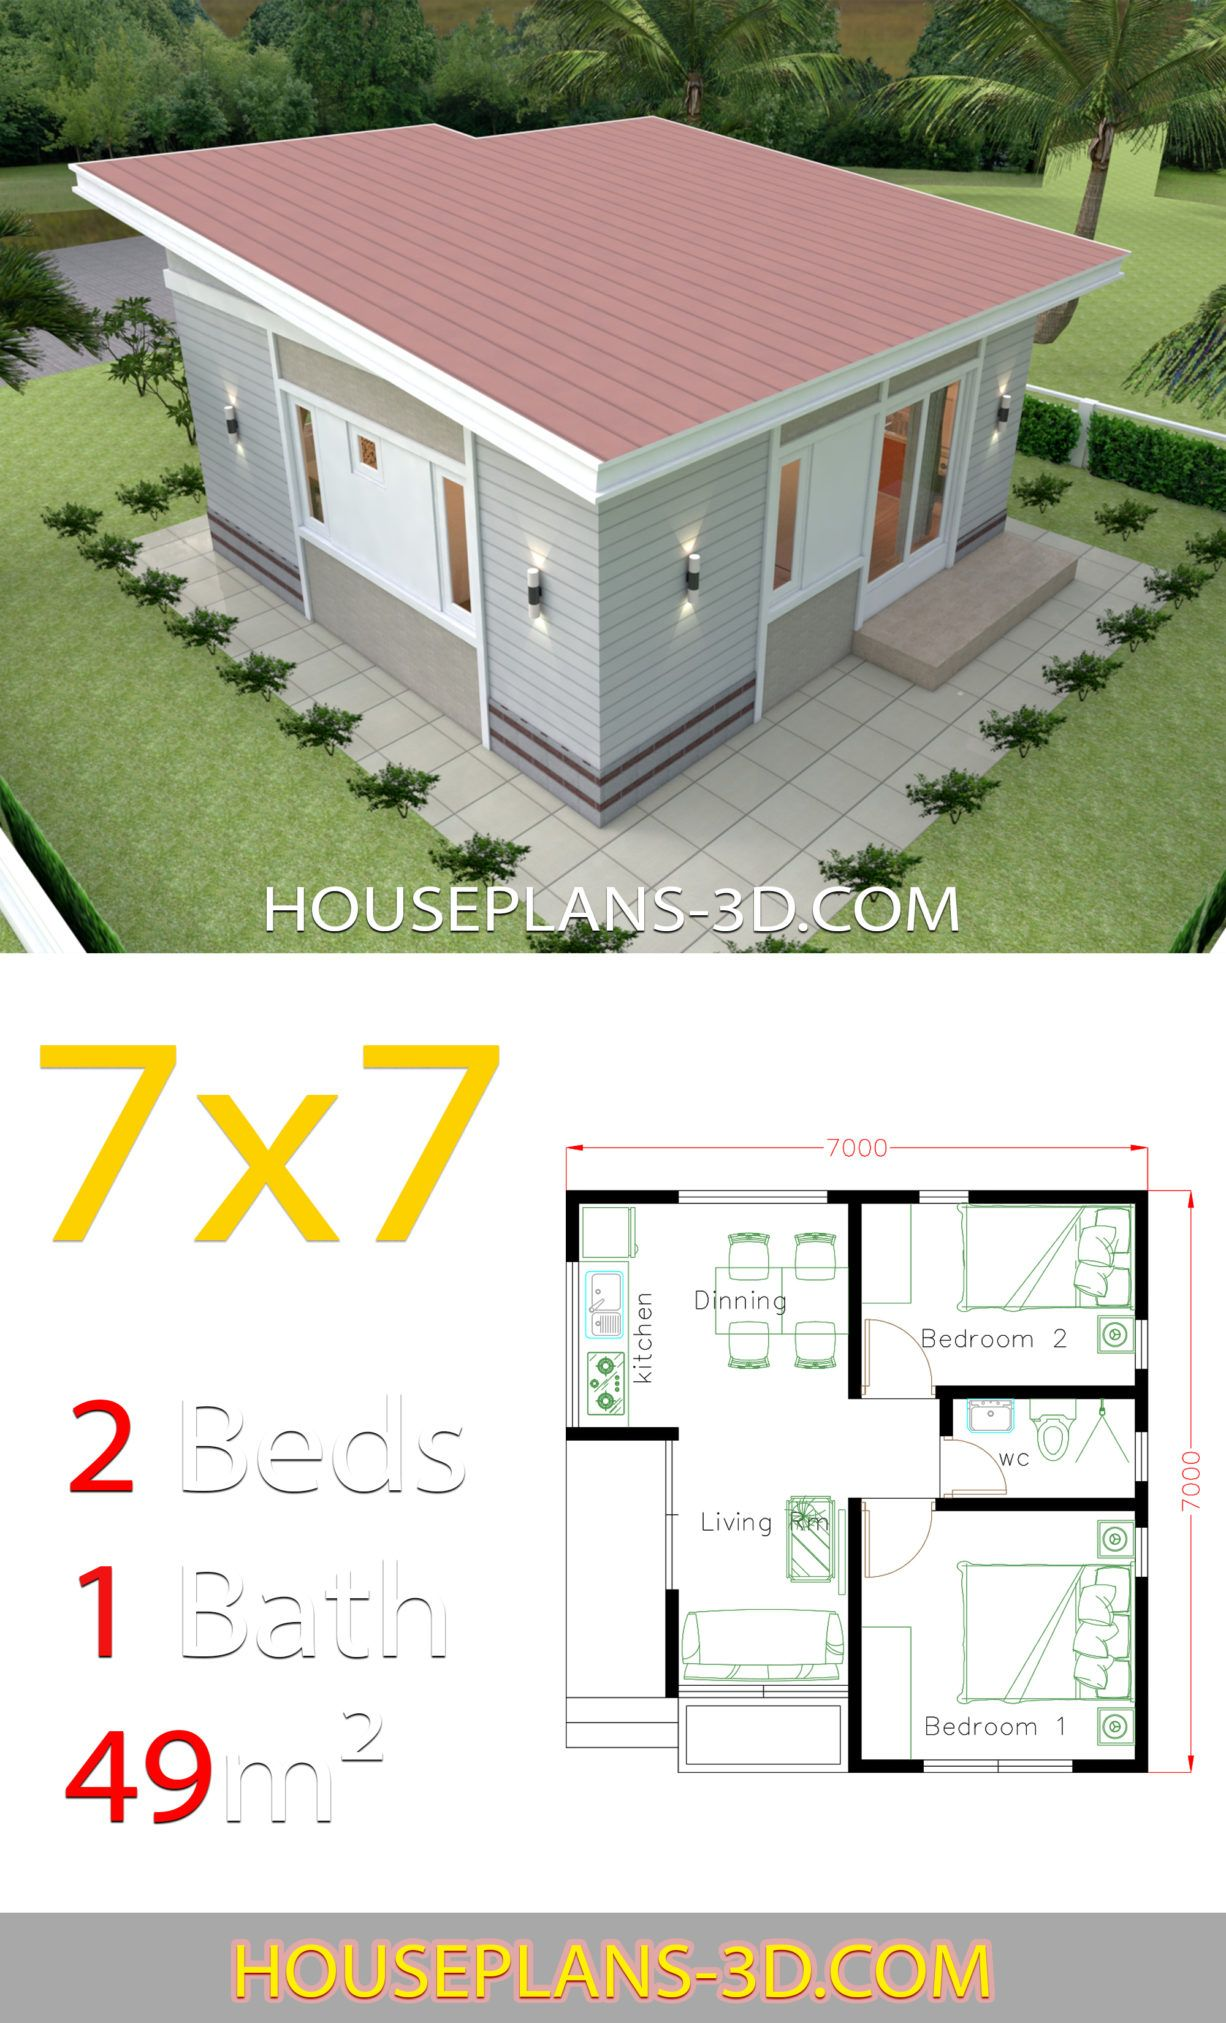 Small House Design 7x7 With 2 Bedrooms House Plans 3d Small House Design Plans House Design Pictures Small House Exteriors